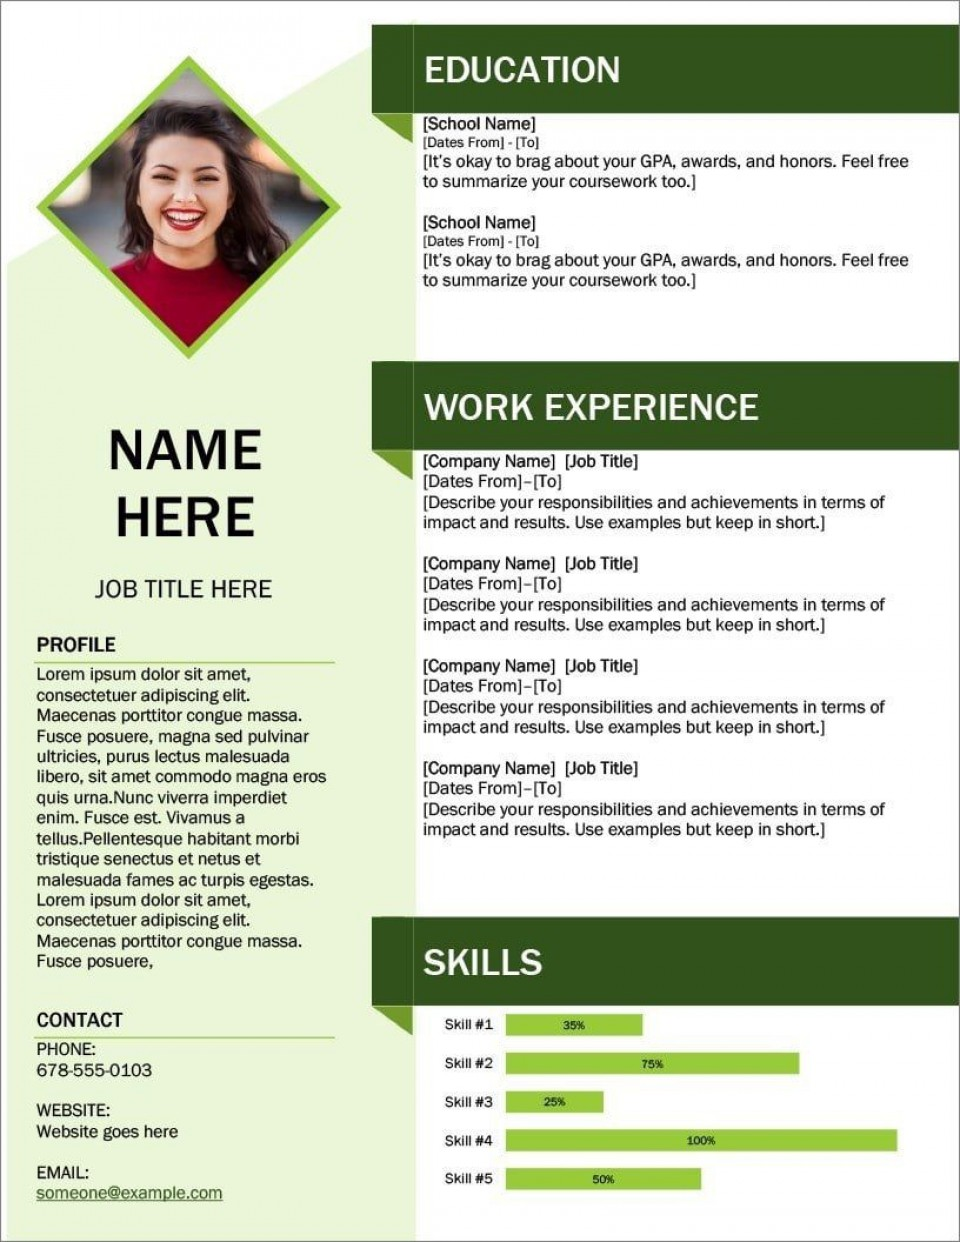 007 Shocking Resume Template M Word Free Idea  Modern Microsoft Download 2010 Cv With Picture960